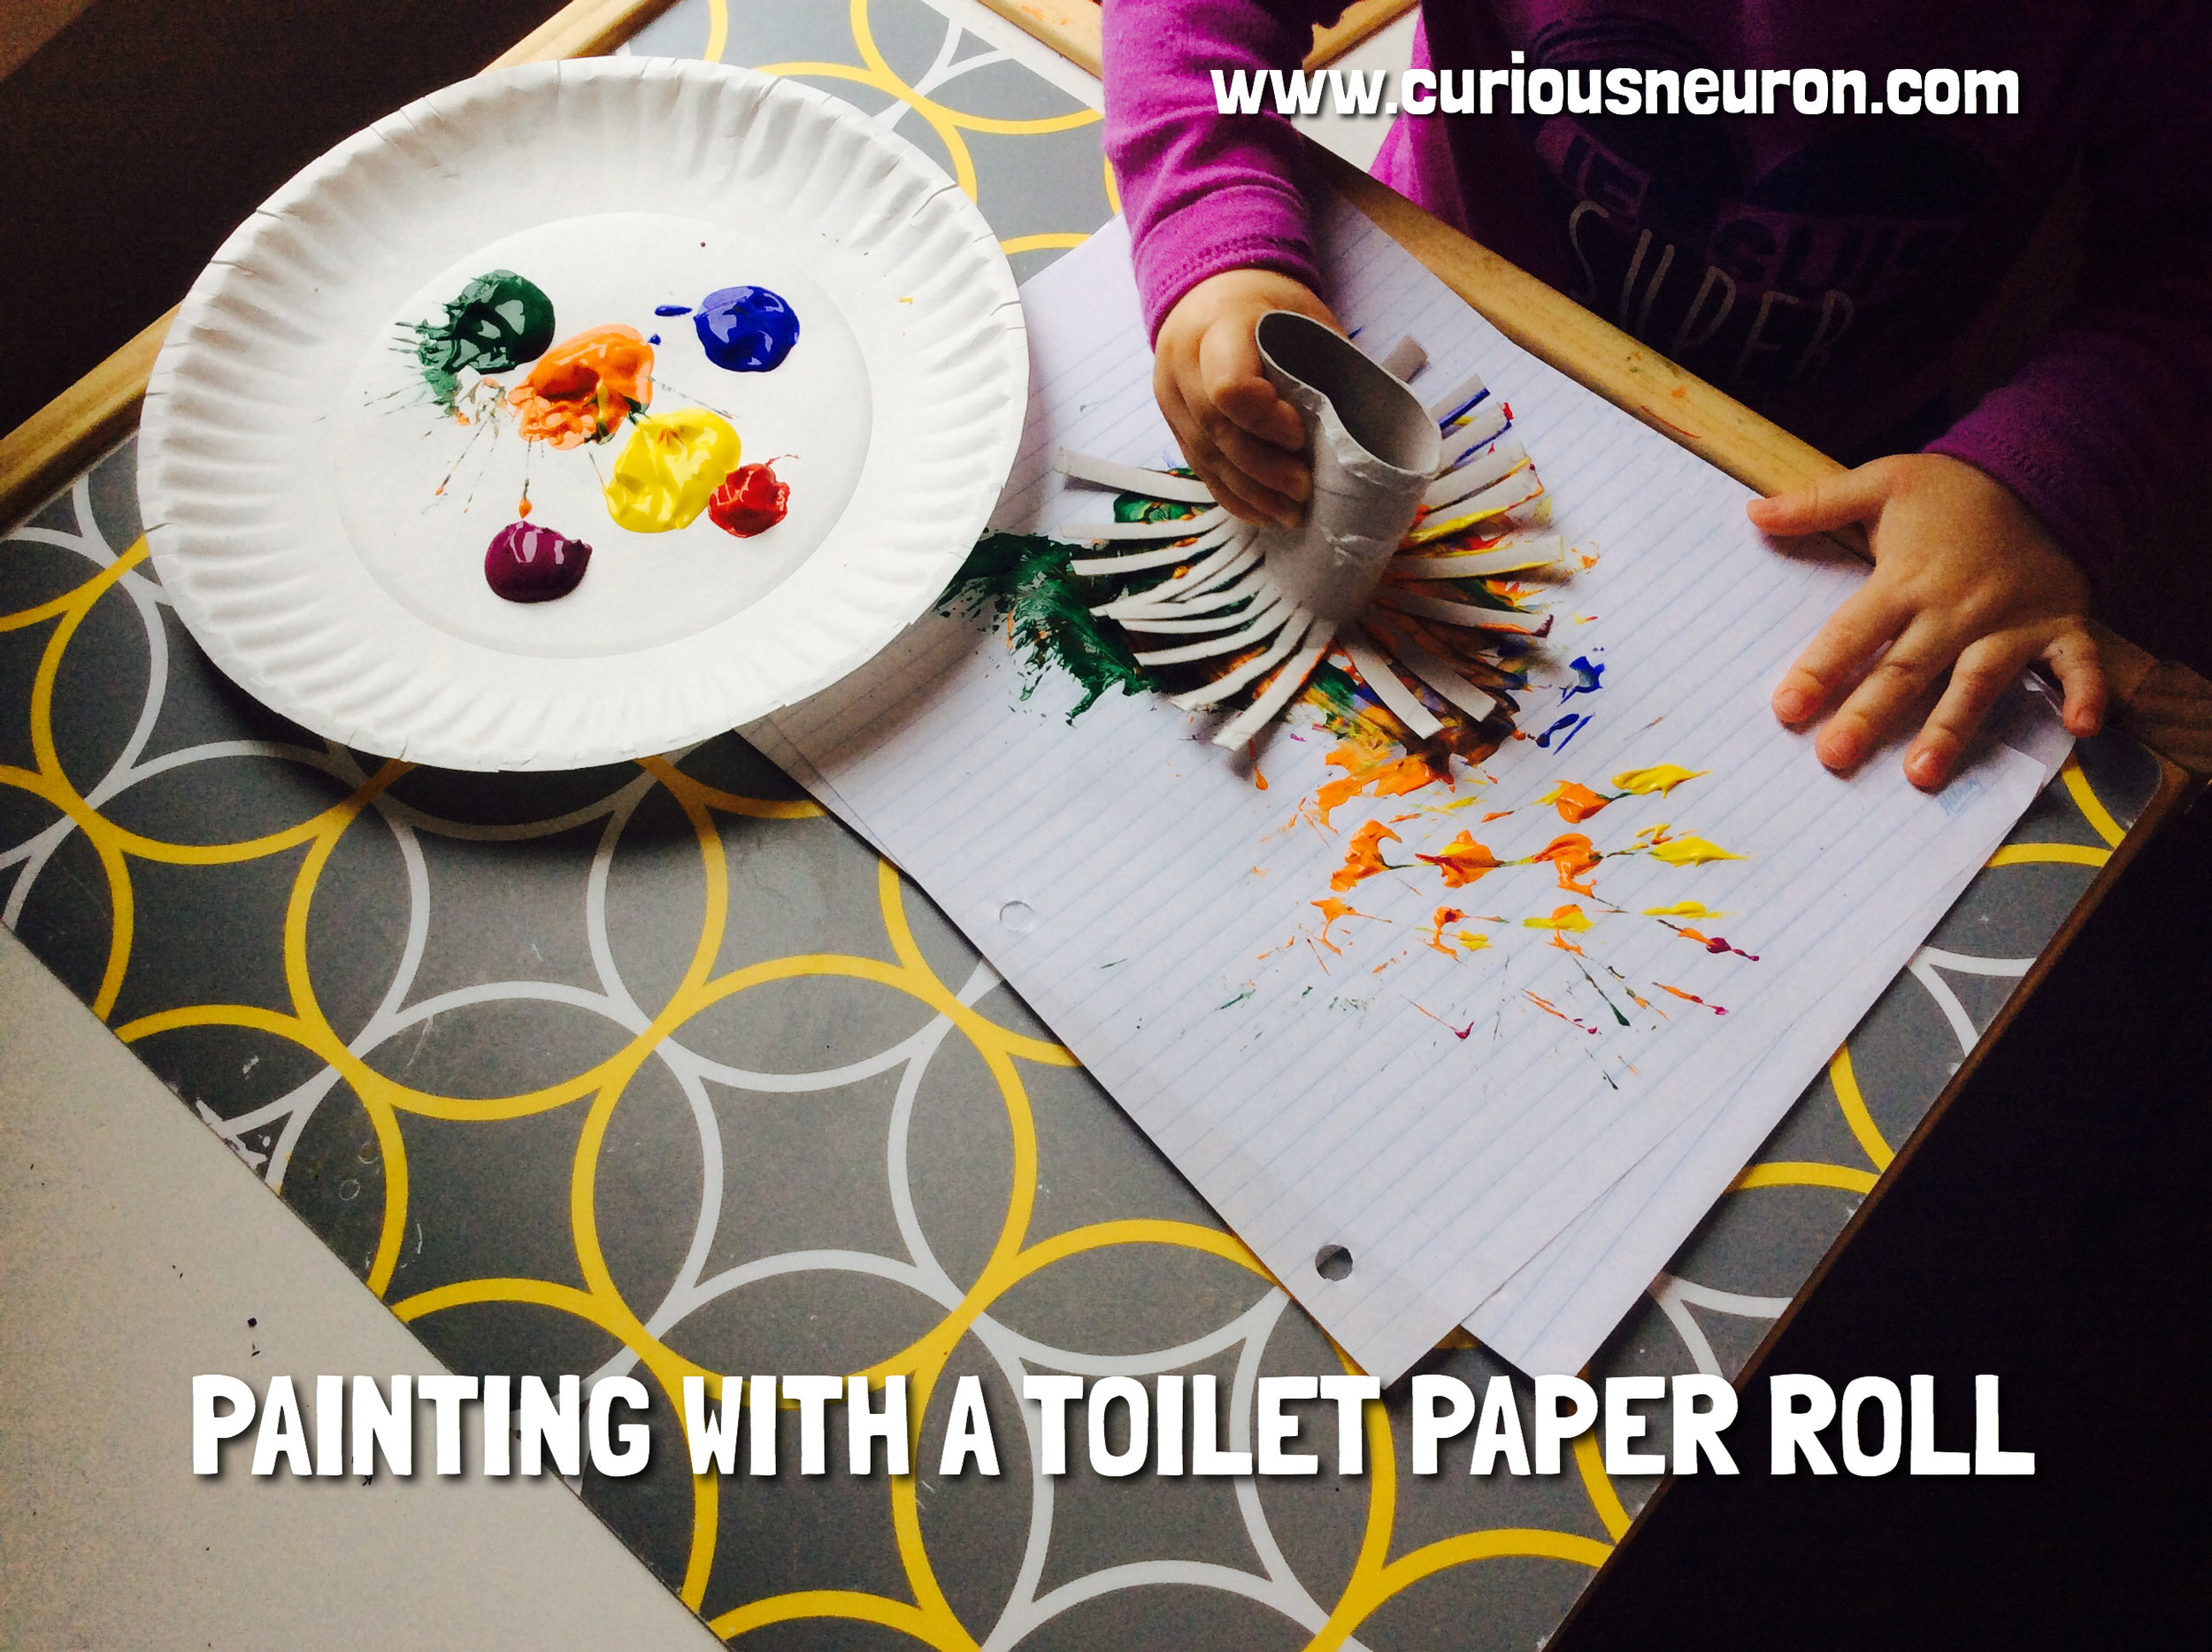 If you have an old role of toilet paper, you can cut the bottom up into strips of any size and flair it out to use it as a paint brush.